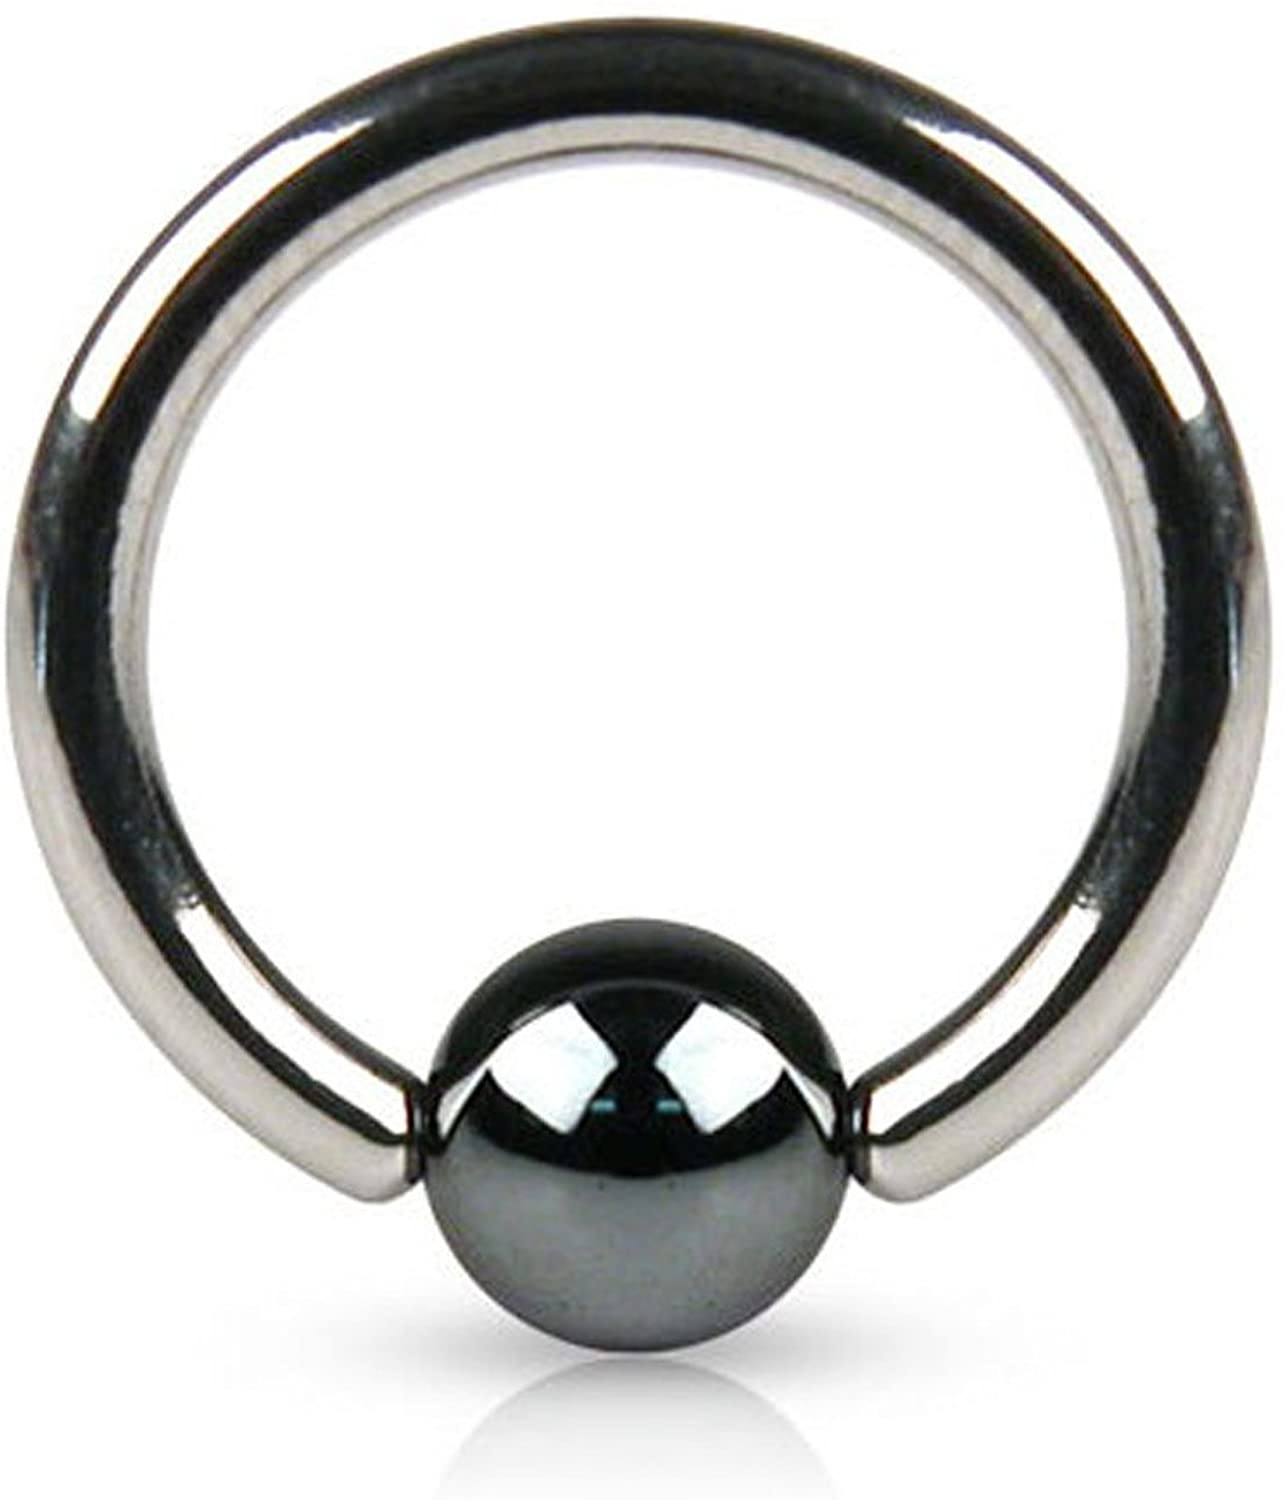 Inspiration Dezigns 14G Captive Bead Ring with Hematite Plated Bead - Sold Individually